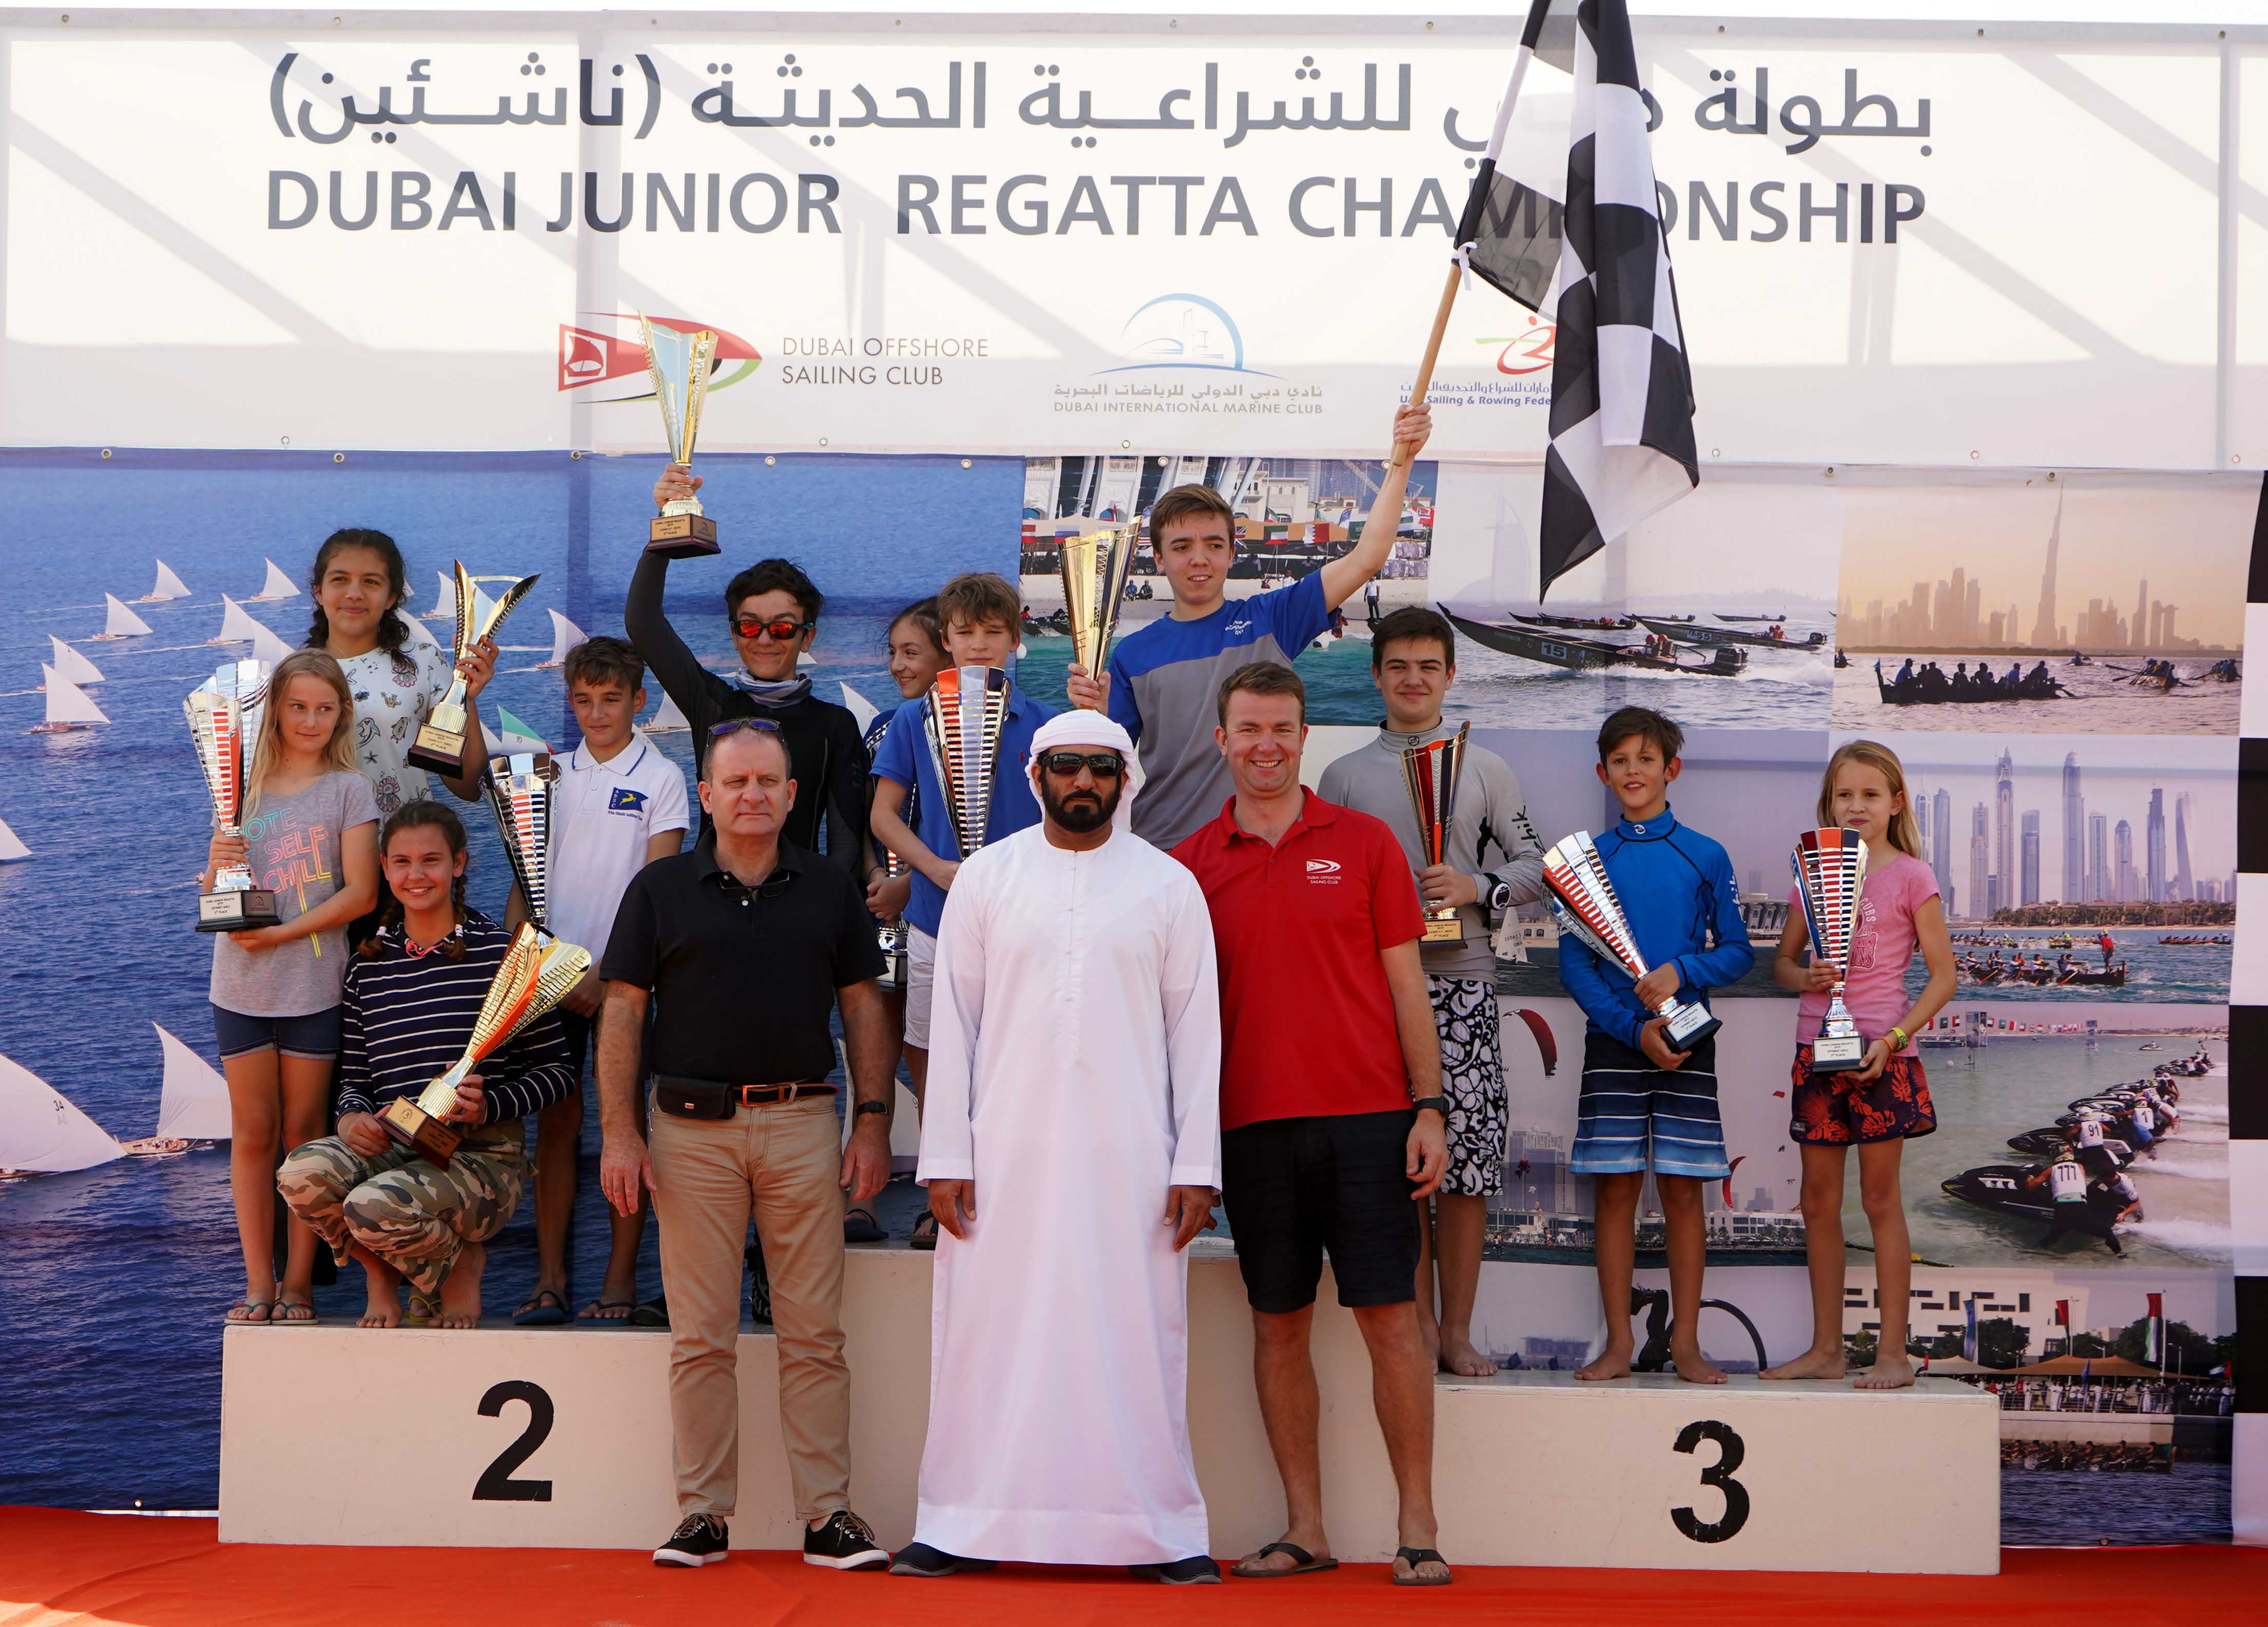 Great success for Third Round of the Dubai Junior Regatta